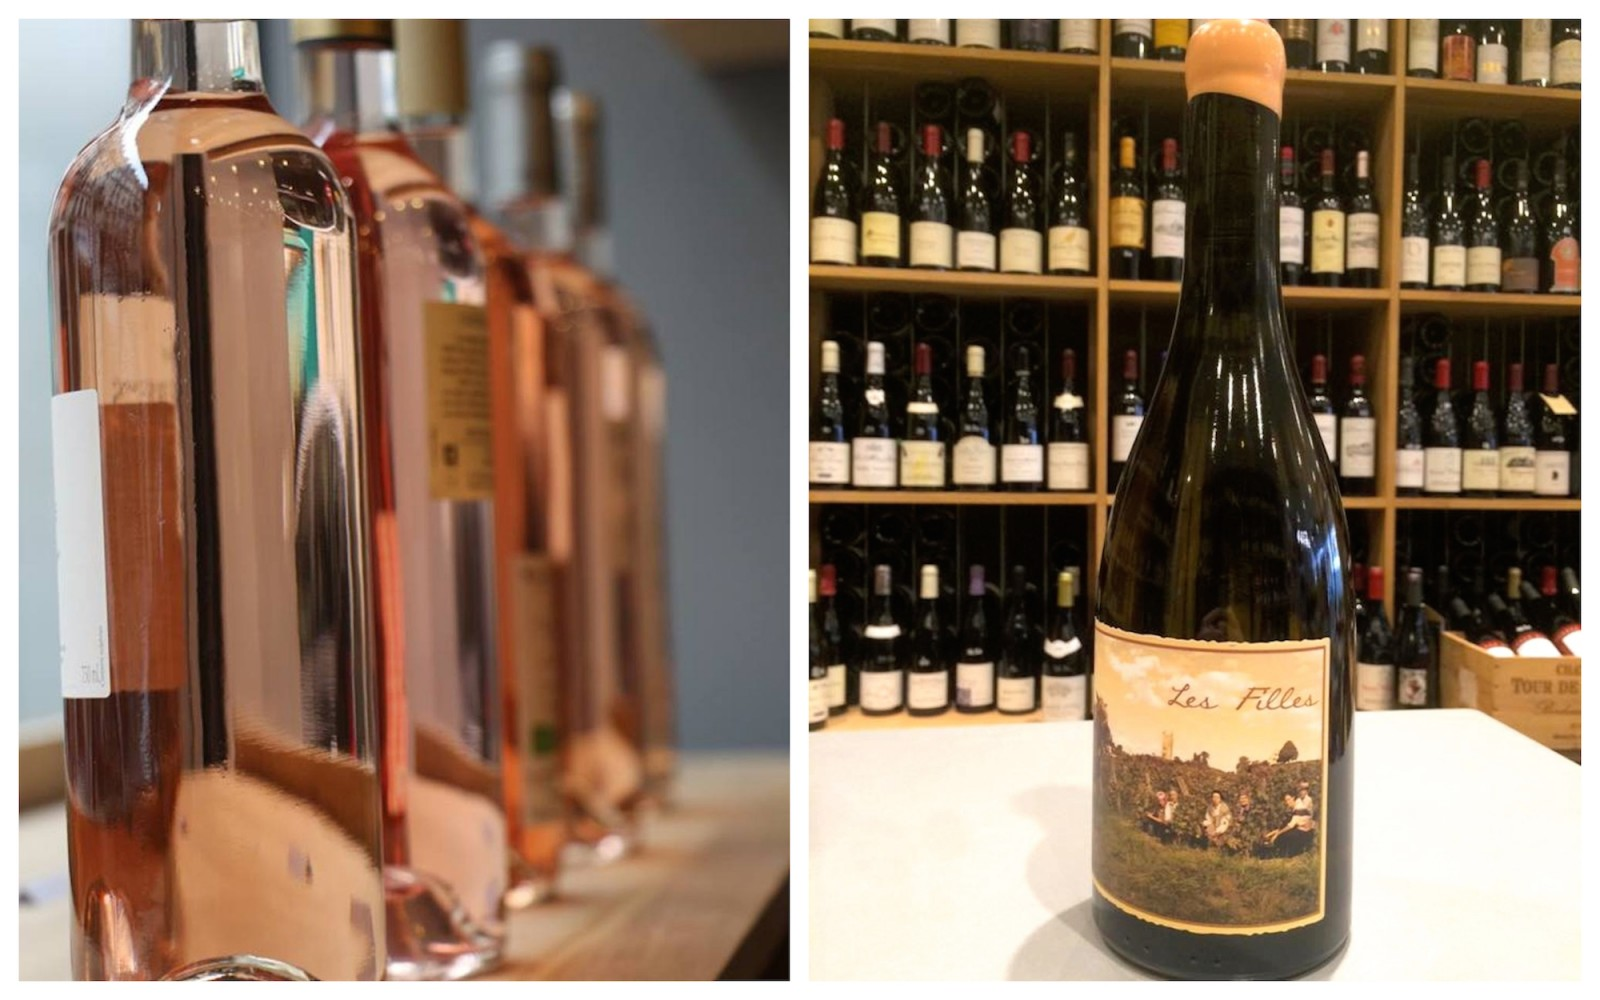 HiP Paris Blog visits Les Petits Domaines - a wine shop for women